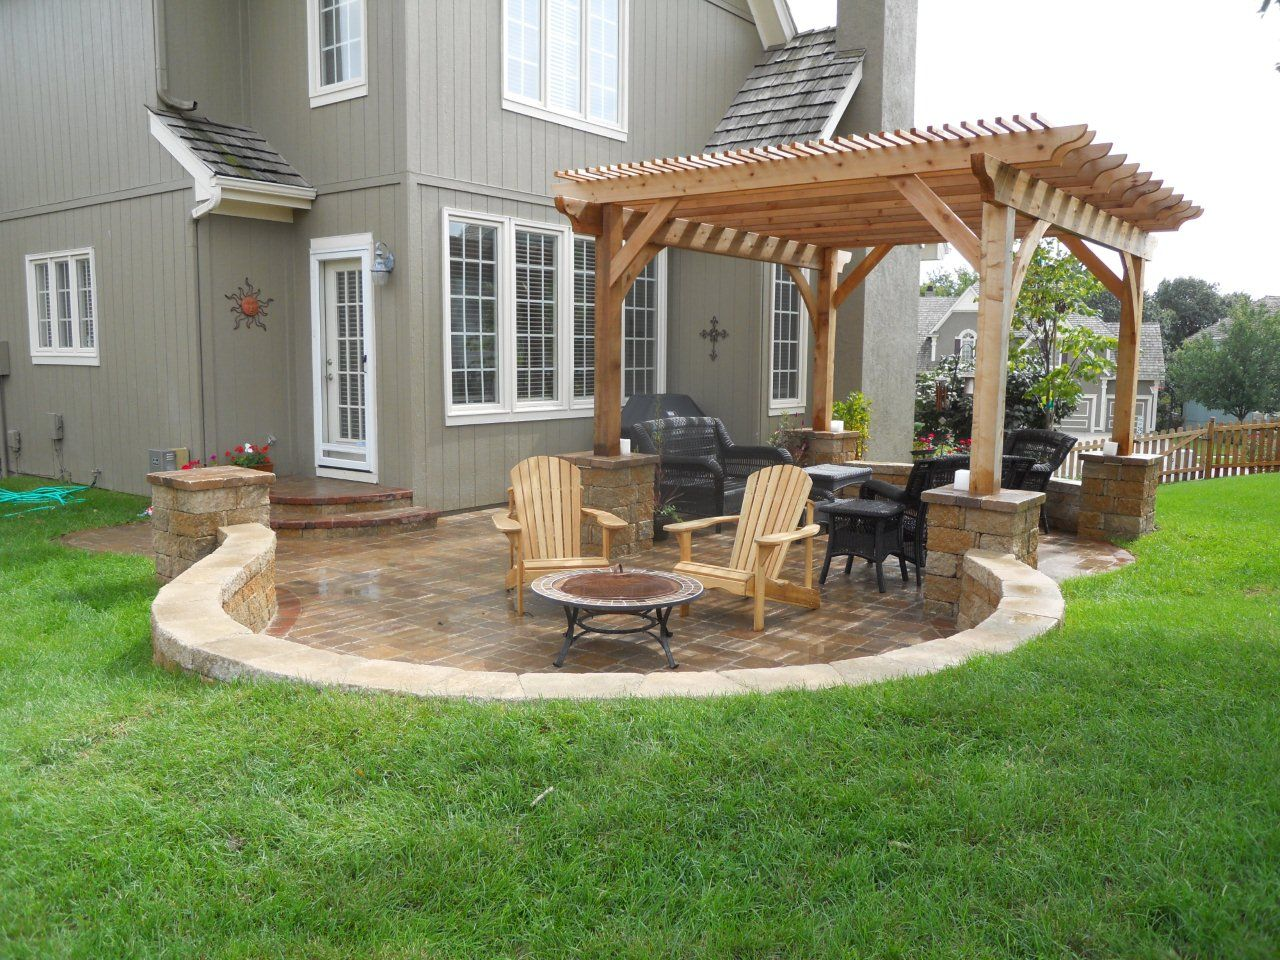 Patio Ideas 1280x960 Archadeck Of Kansas City Decks Screen Porches ...